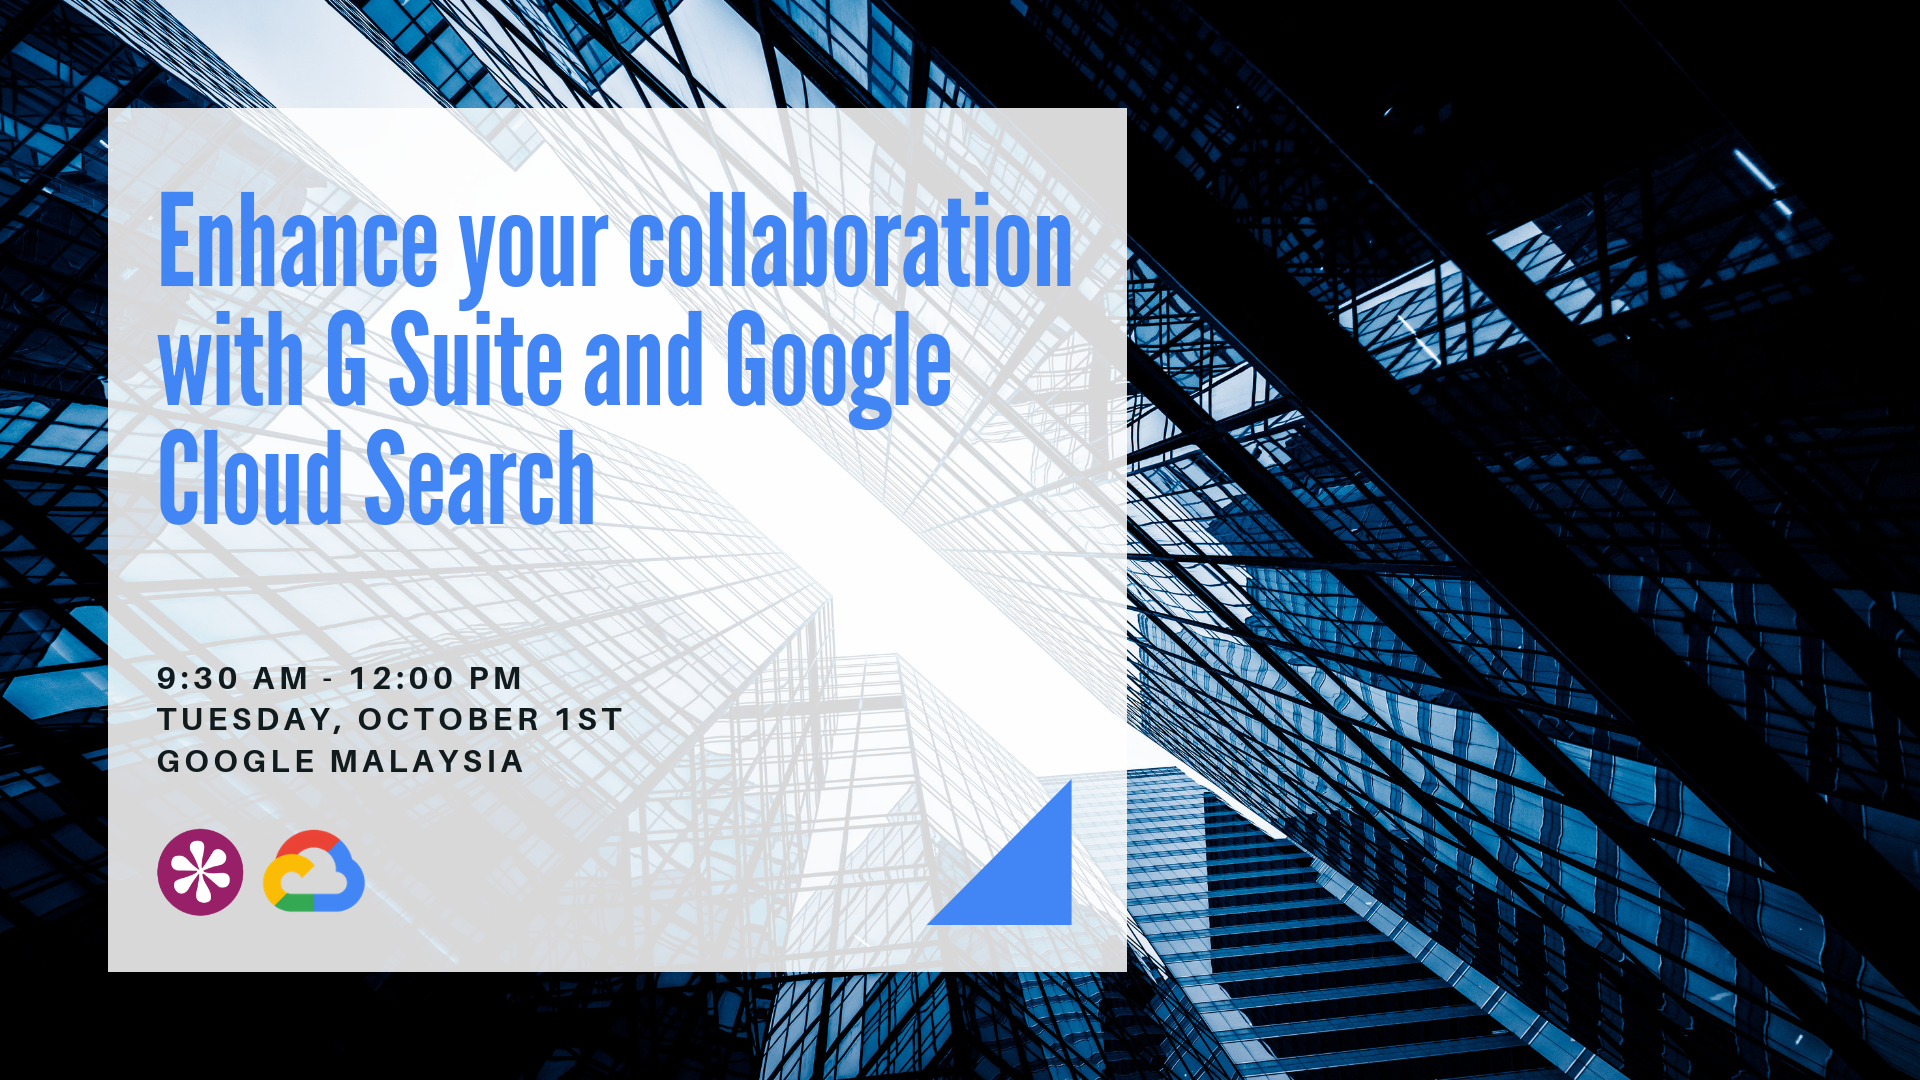 M01-10-19 Enhance your collaboration with G Suite and Google Cloud Search